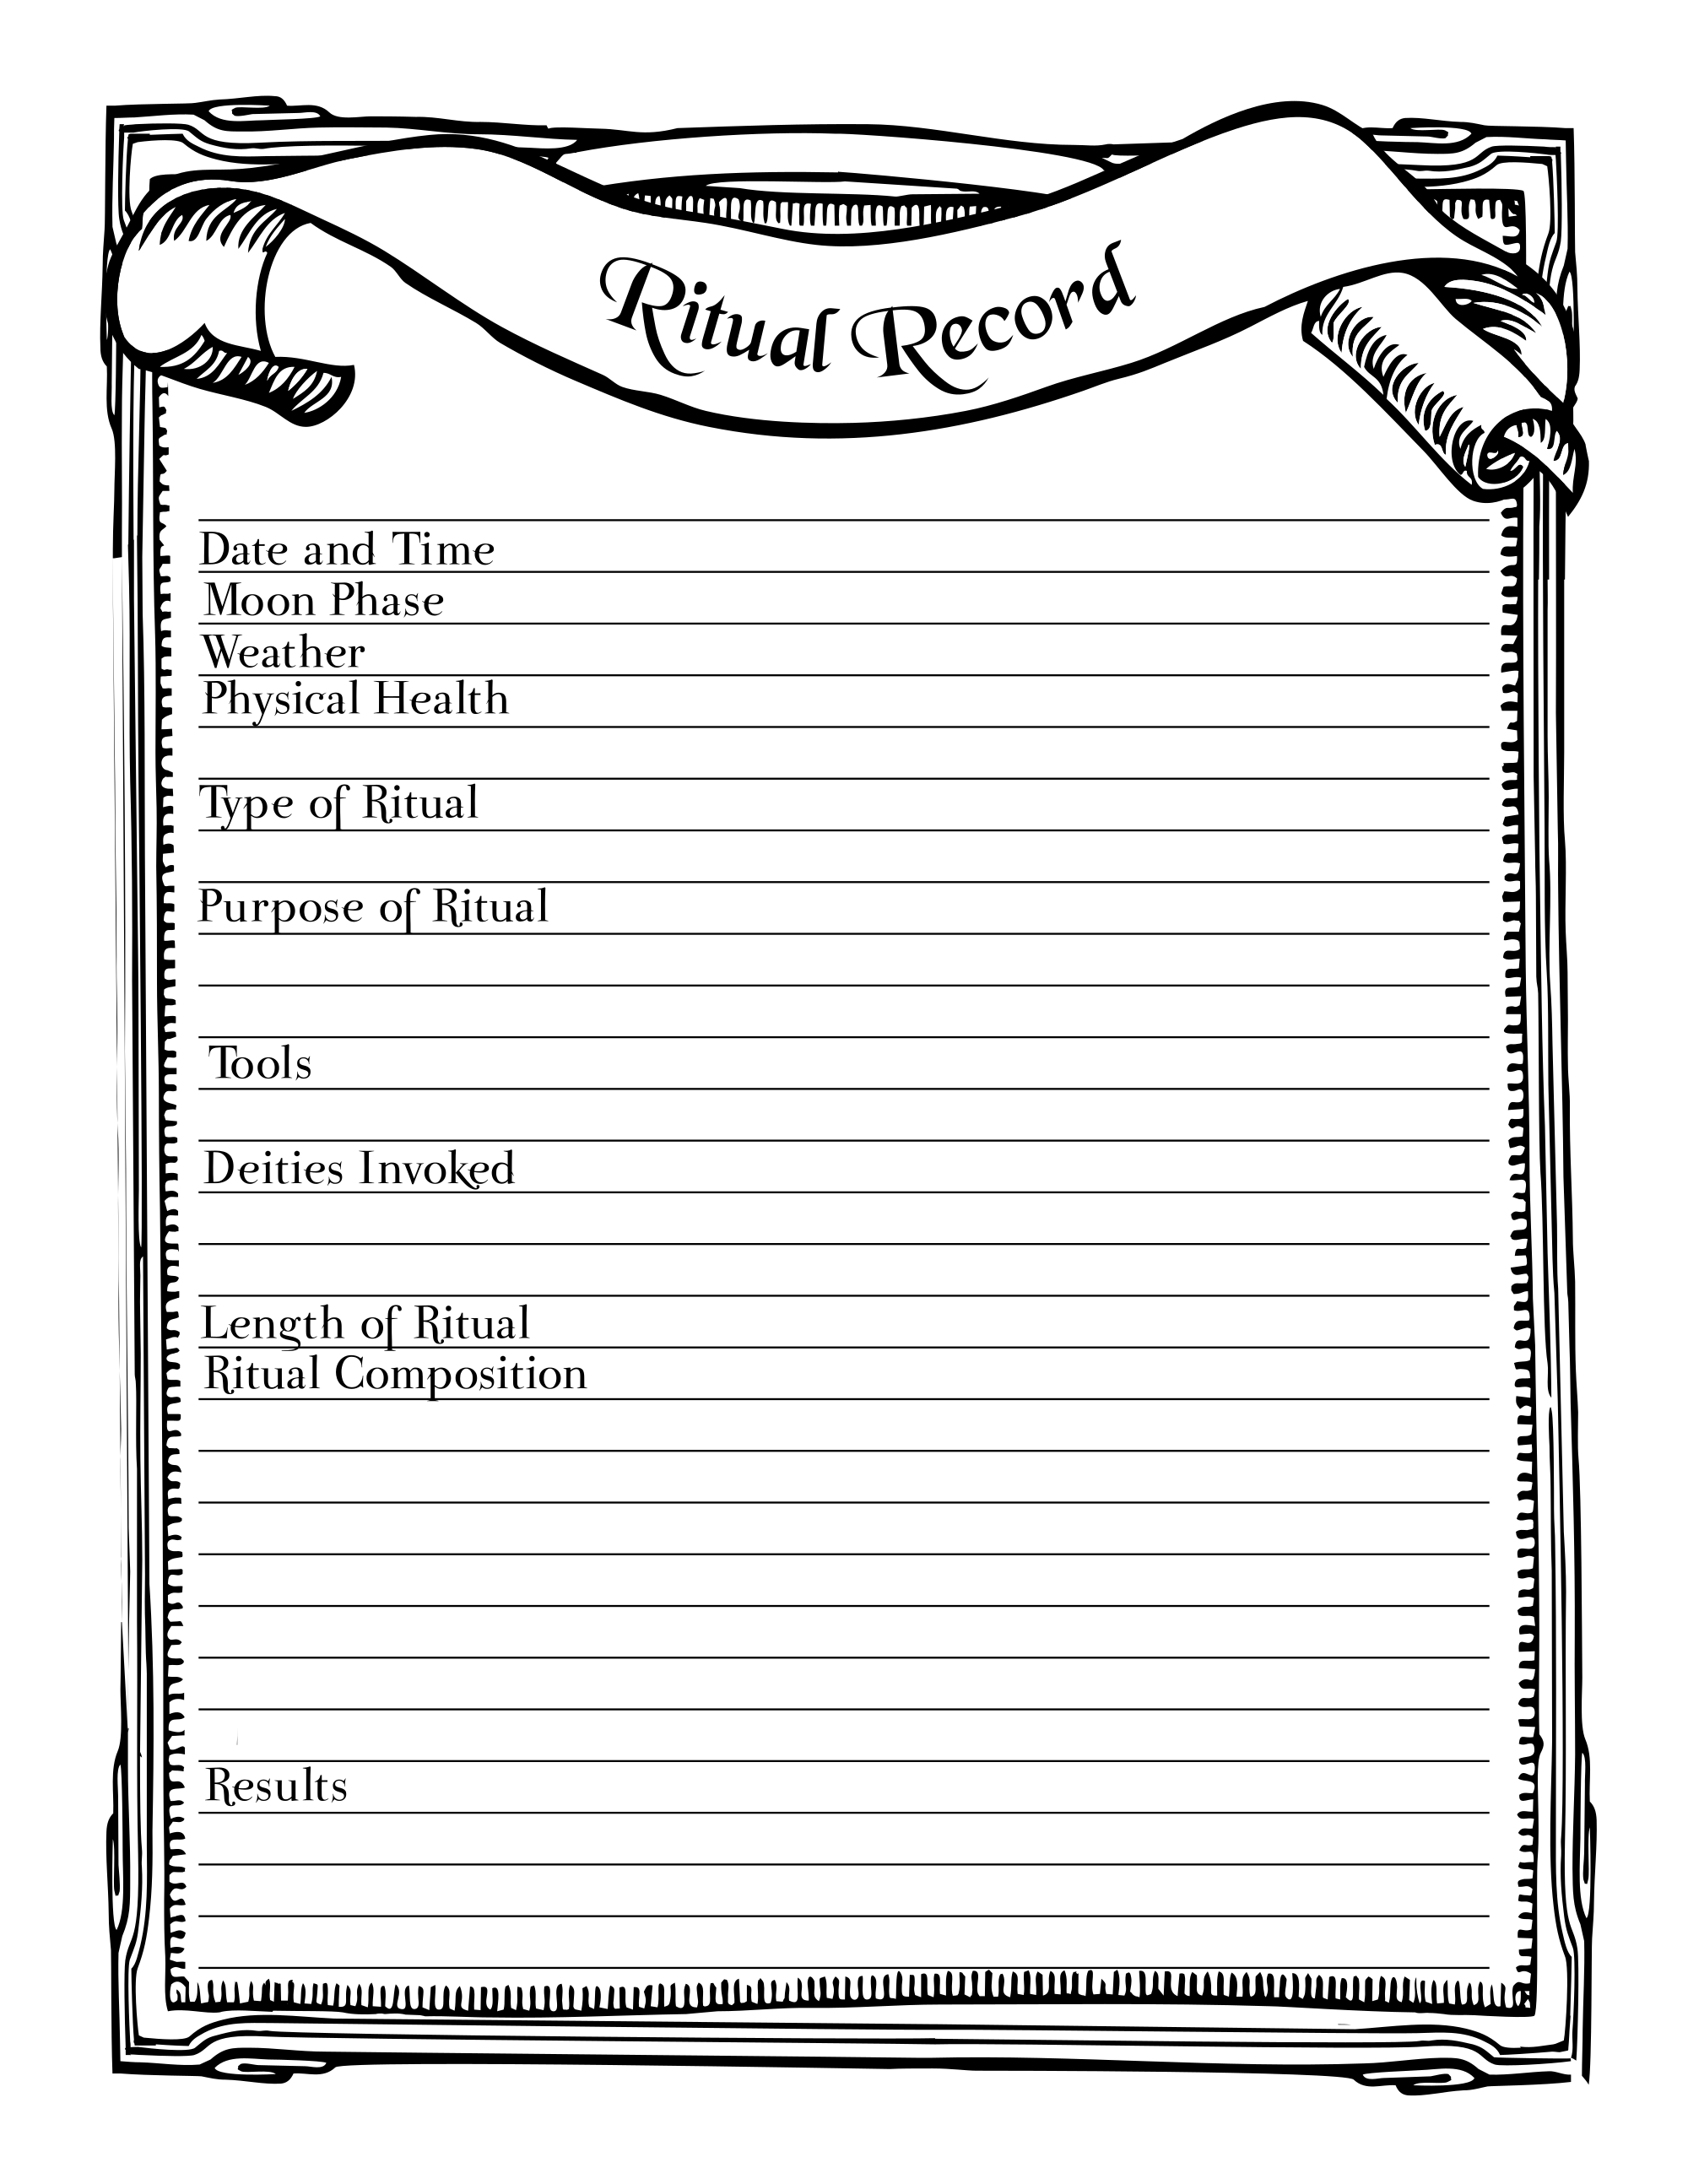 Ritual Record Printable Stationary Page Book Of Shadows